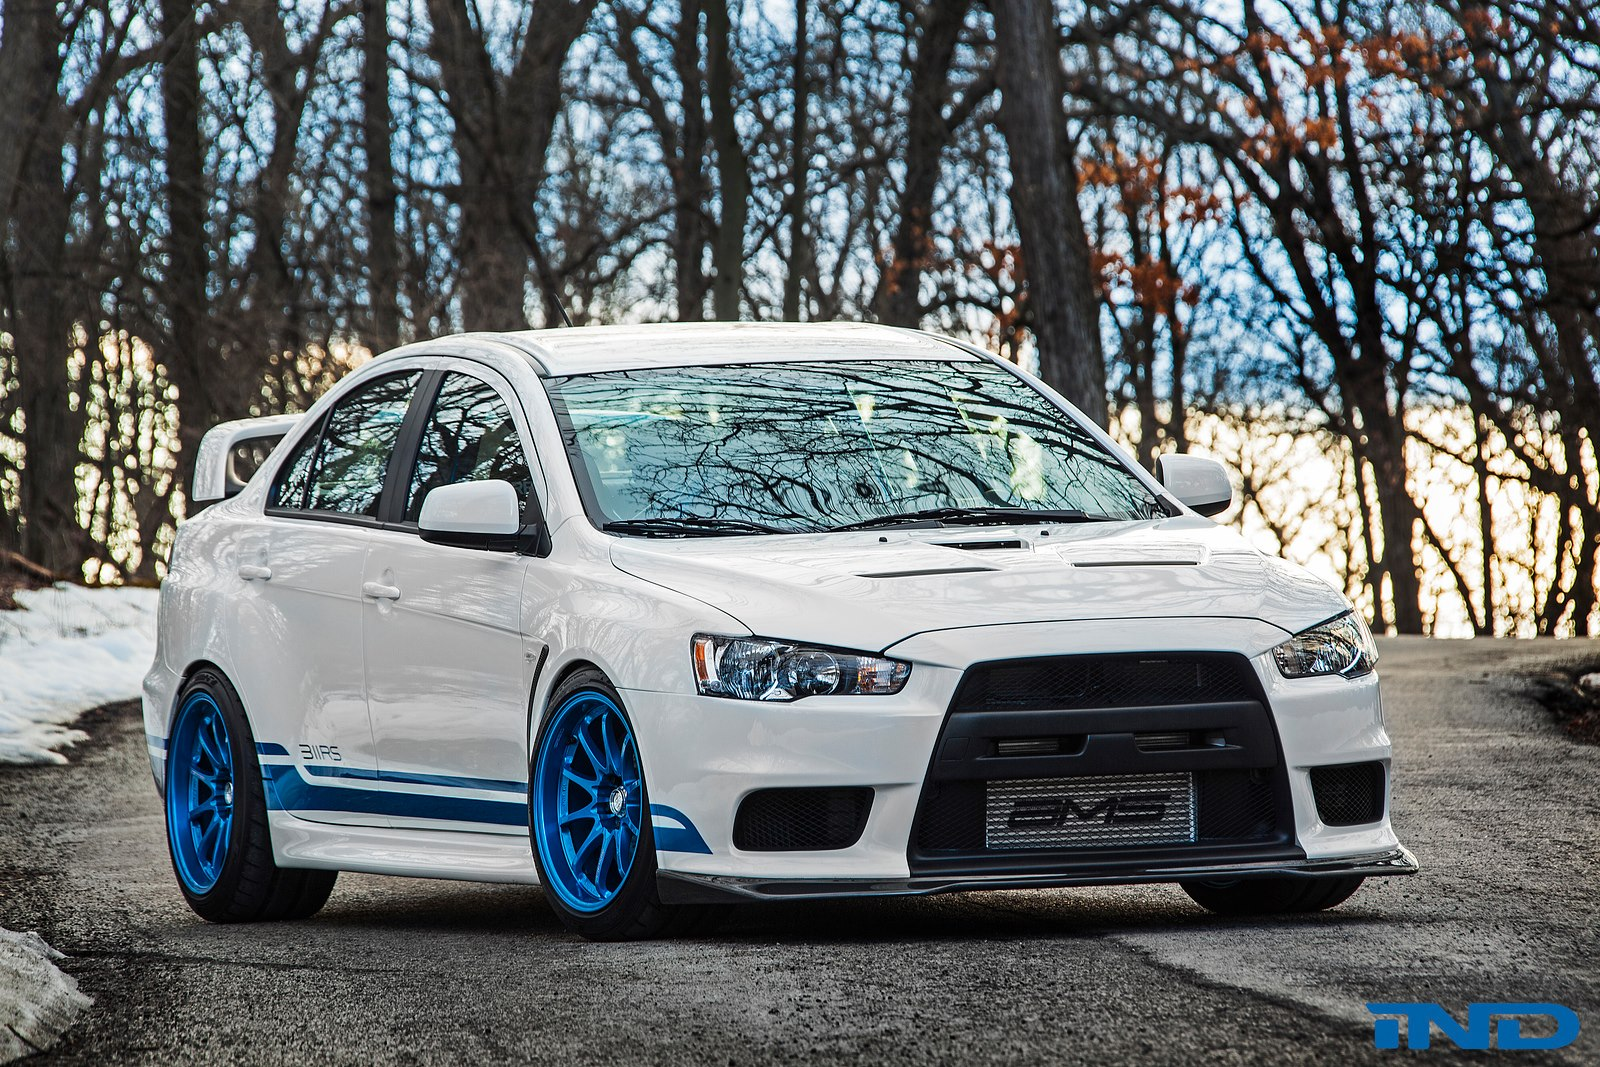 http://www.automobilesreview.com/img/ind-mitsubishi-evo-x-311rs/ind-mitsubishi-evo-x-311rs-02.jpg